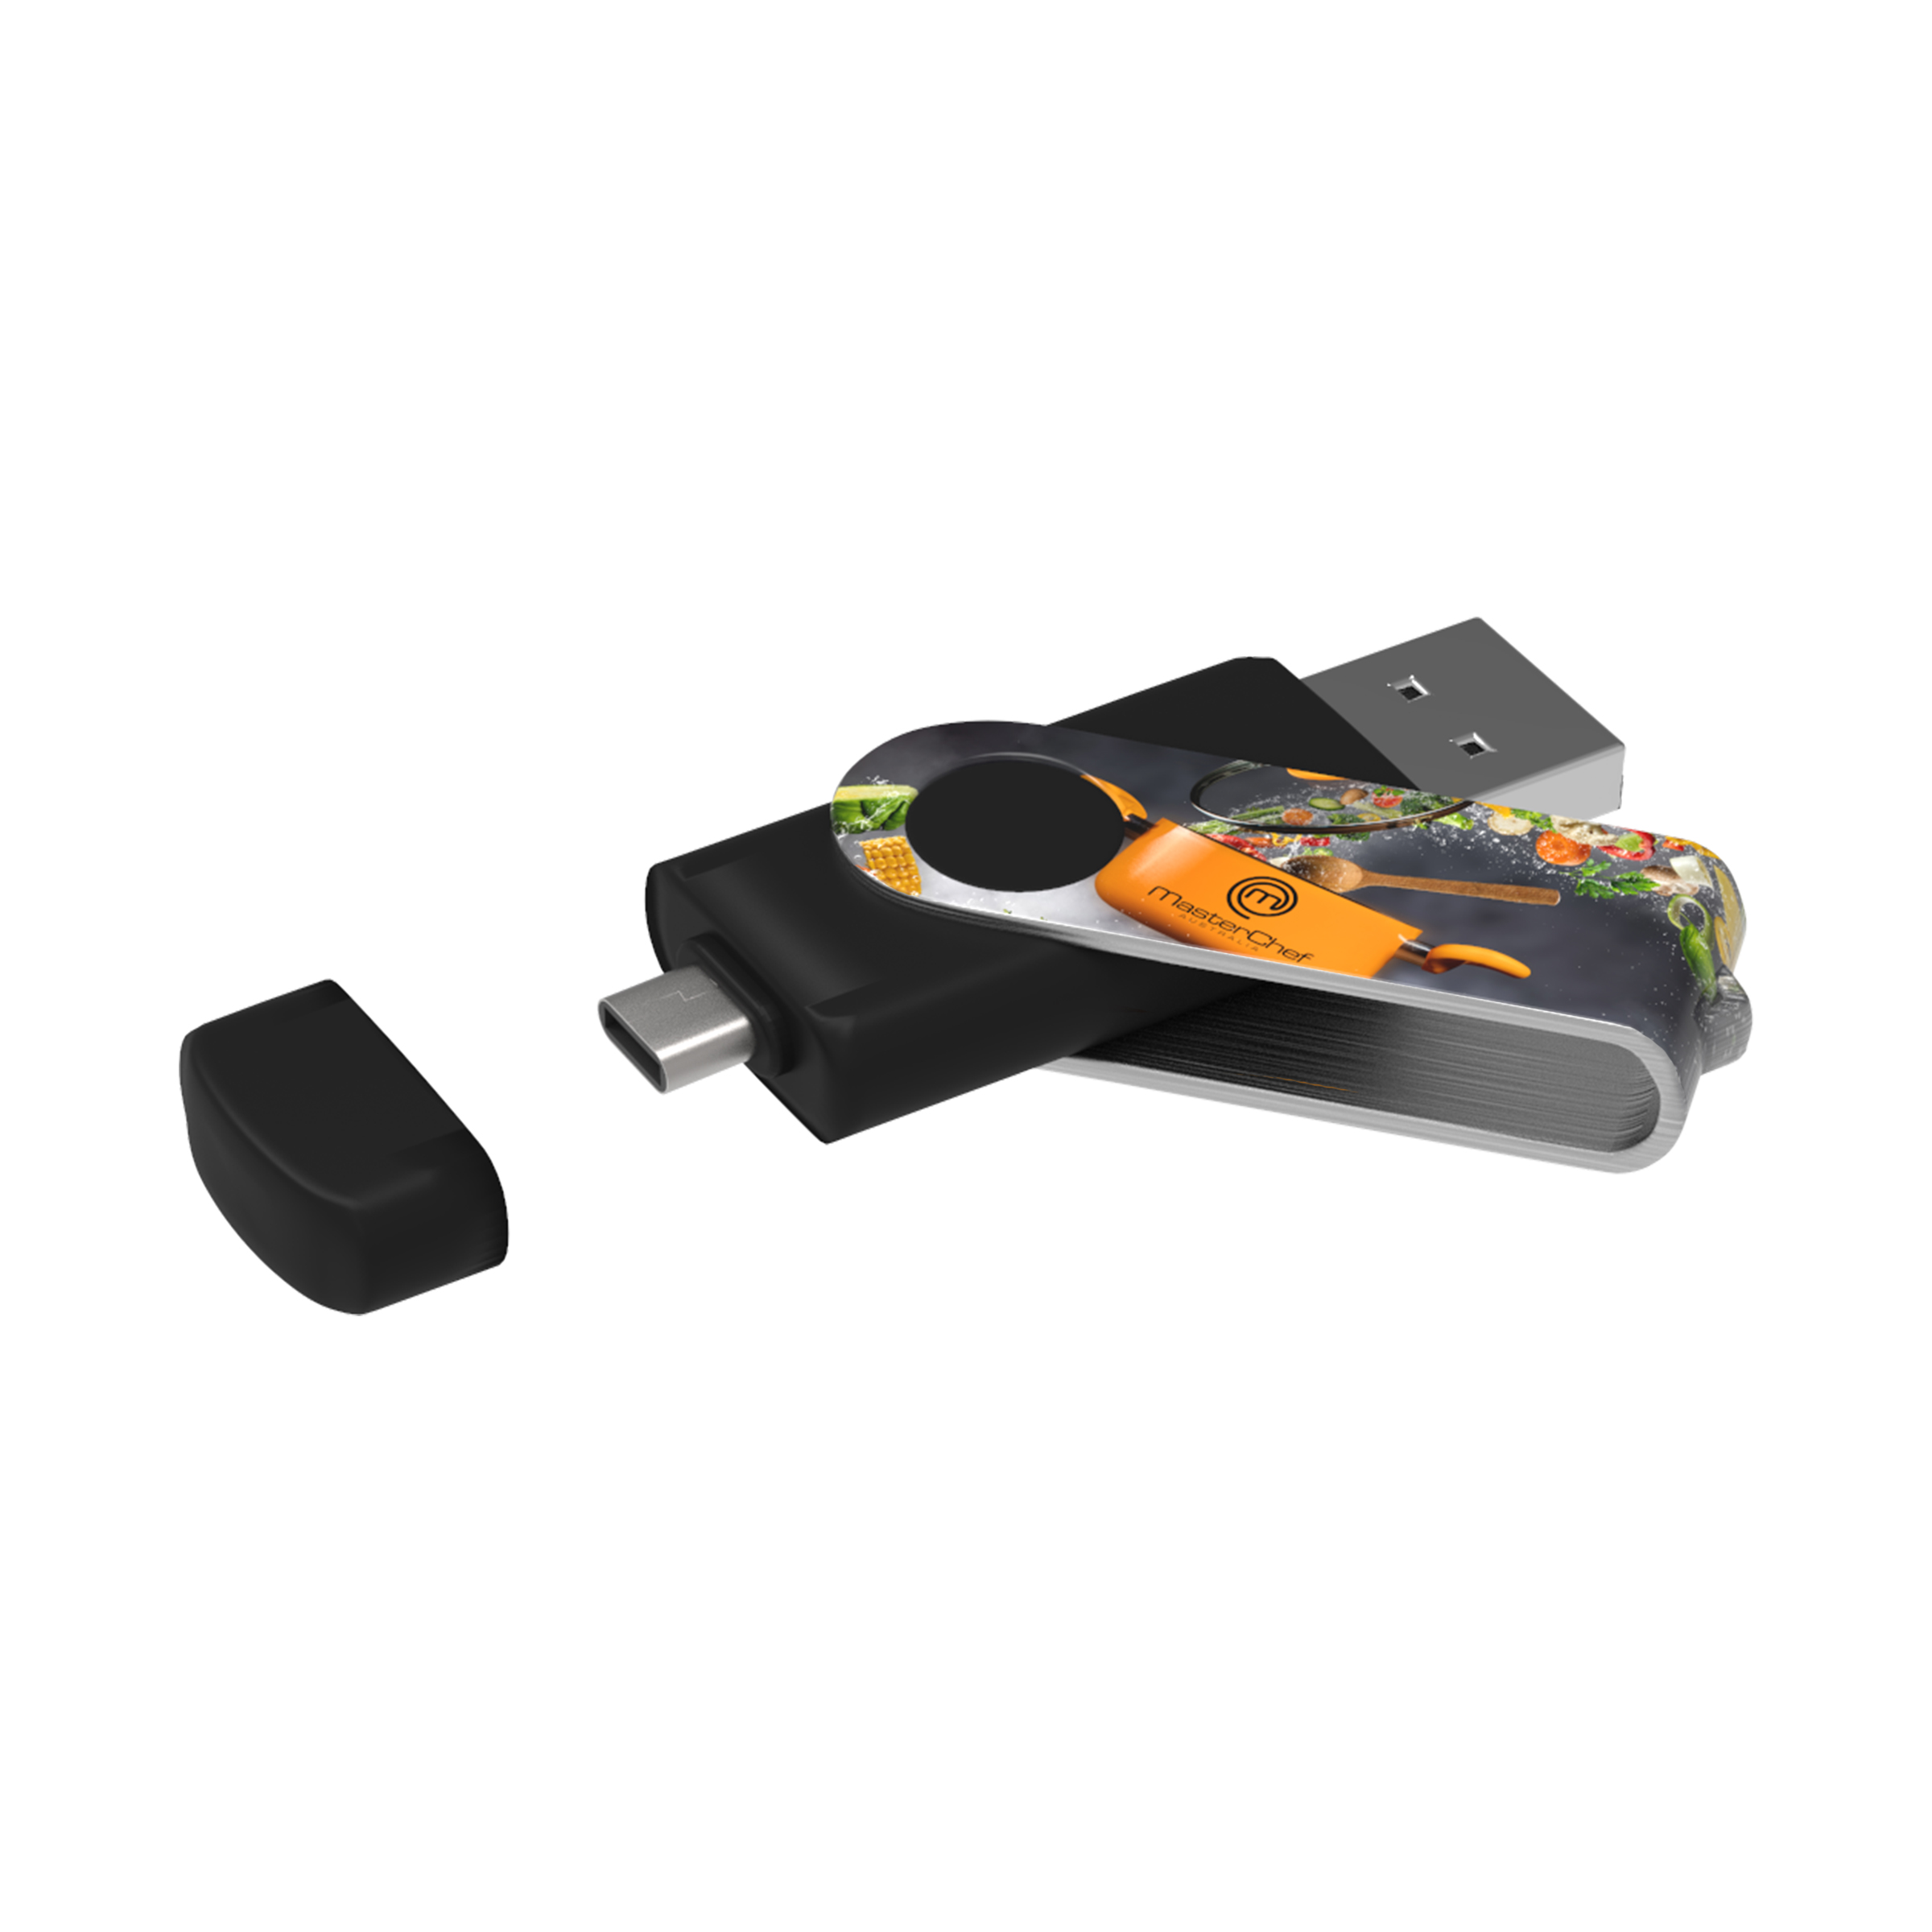 USB Stick Twister C MaxPrint 1